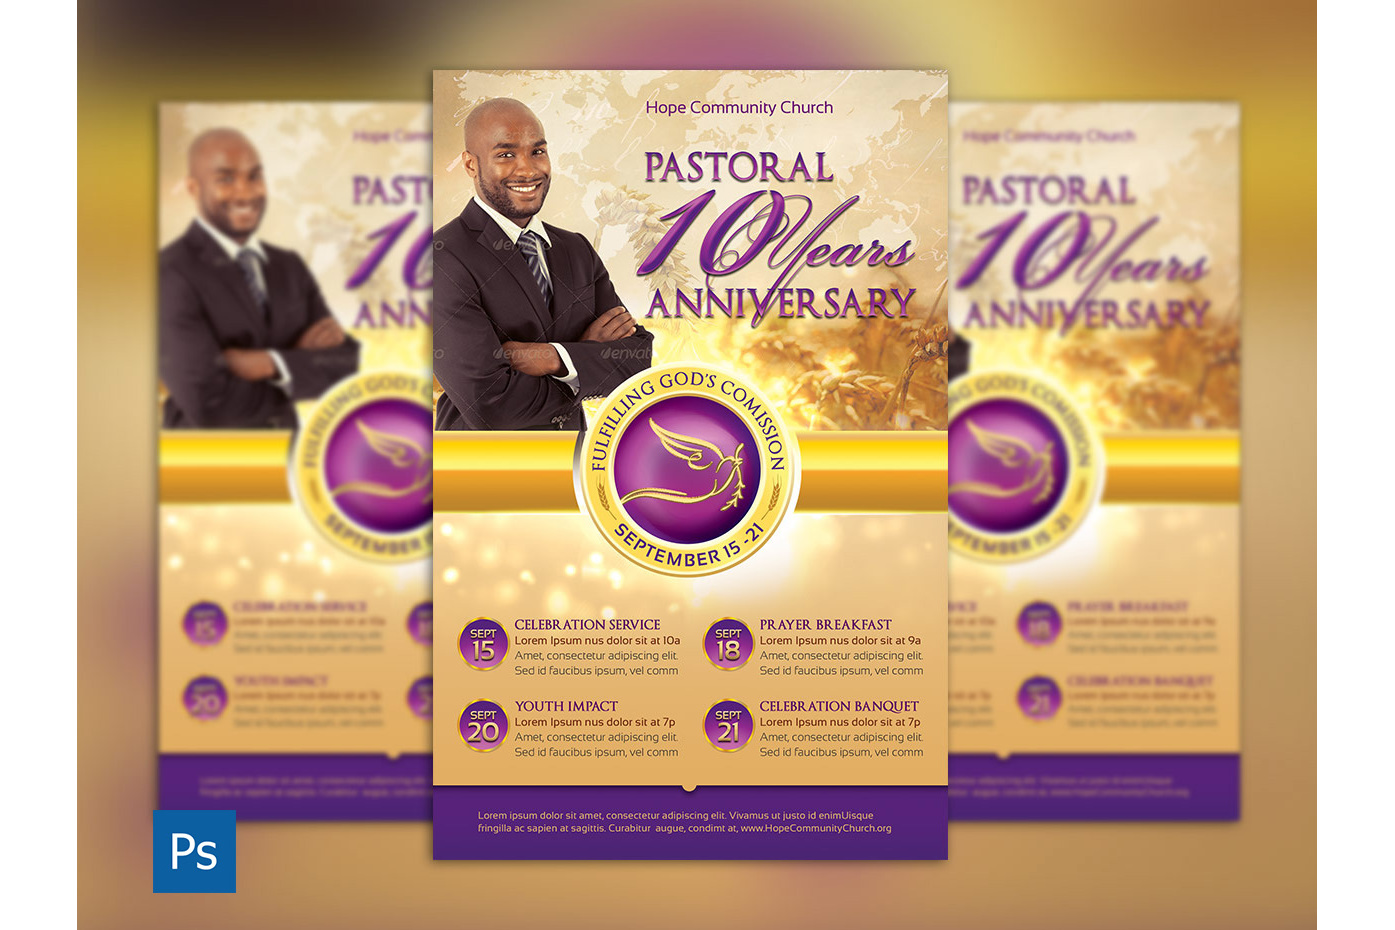 Clergy Anniversary Flyer Template example image 1